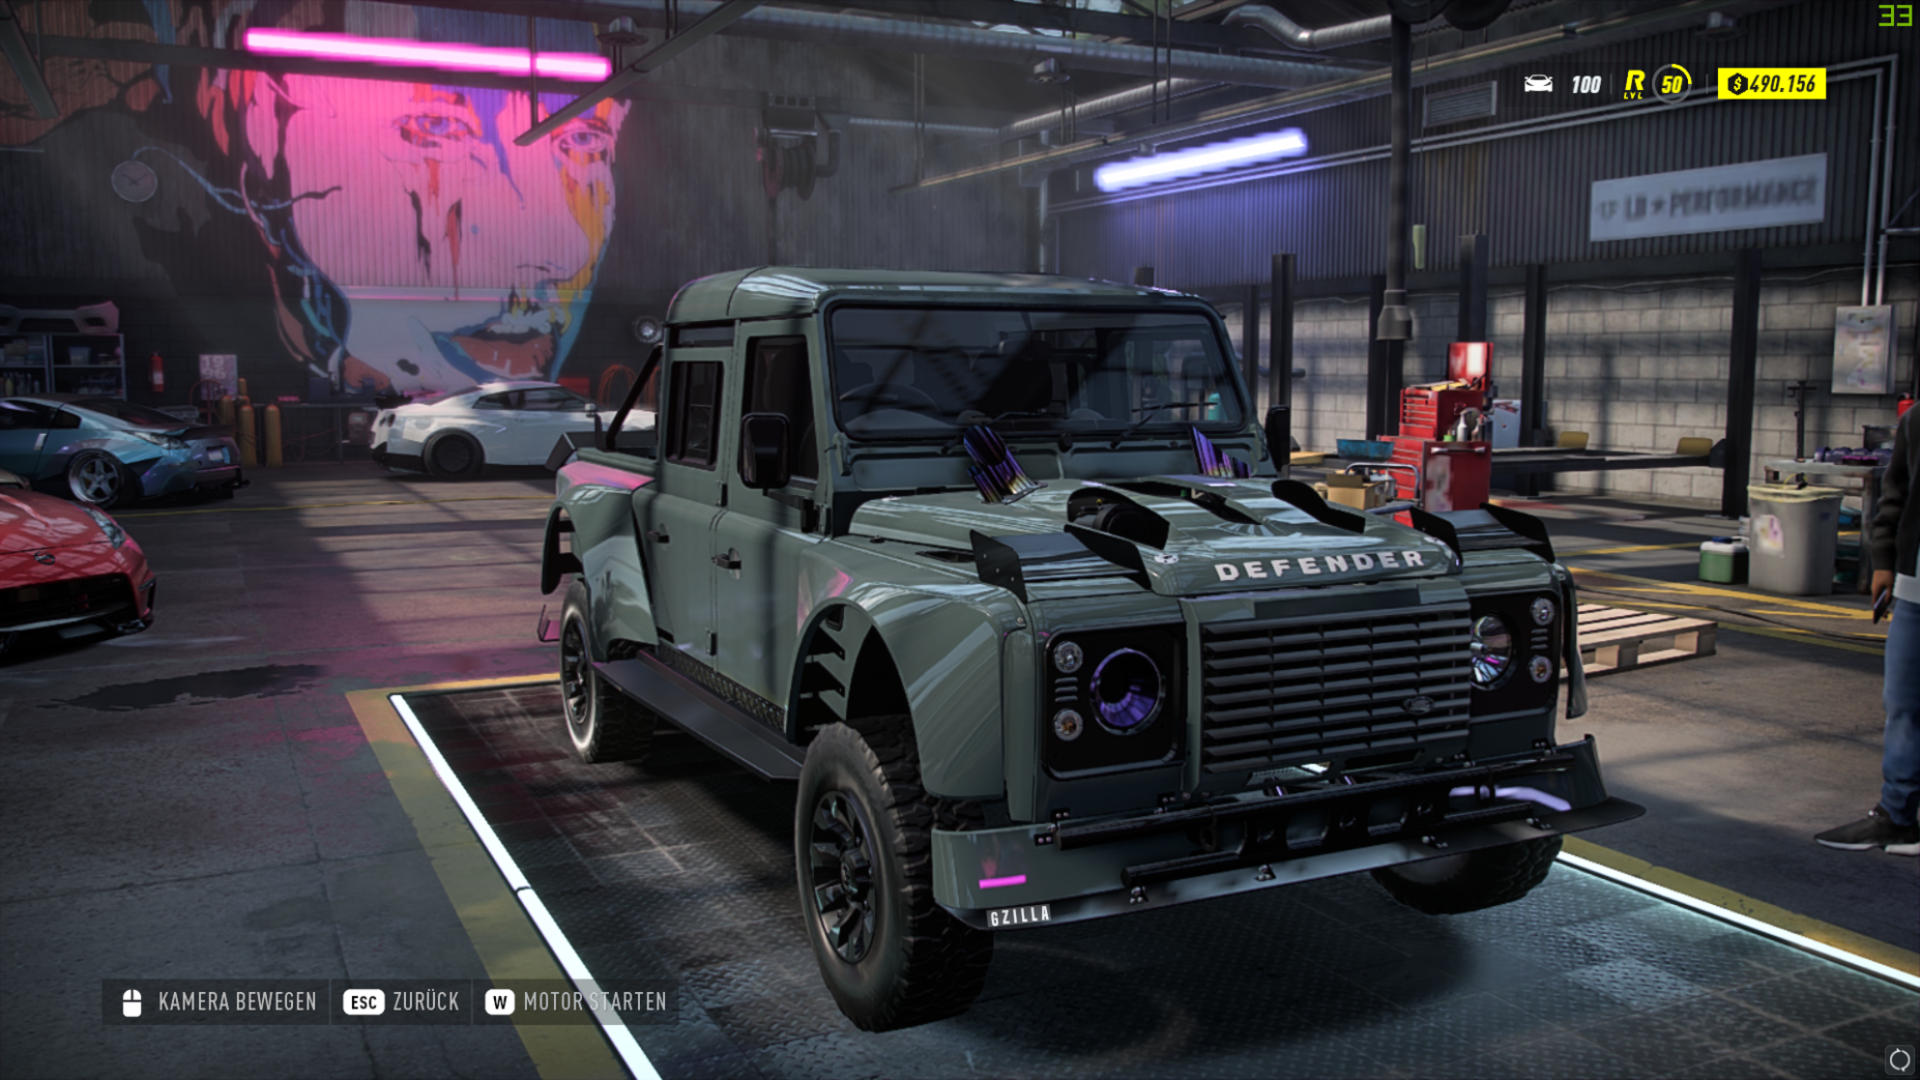 NFS - Need for Speed Heat - Land Rover Defender